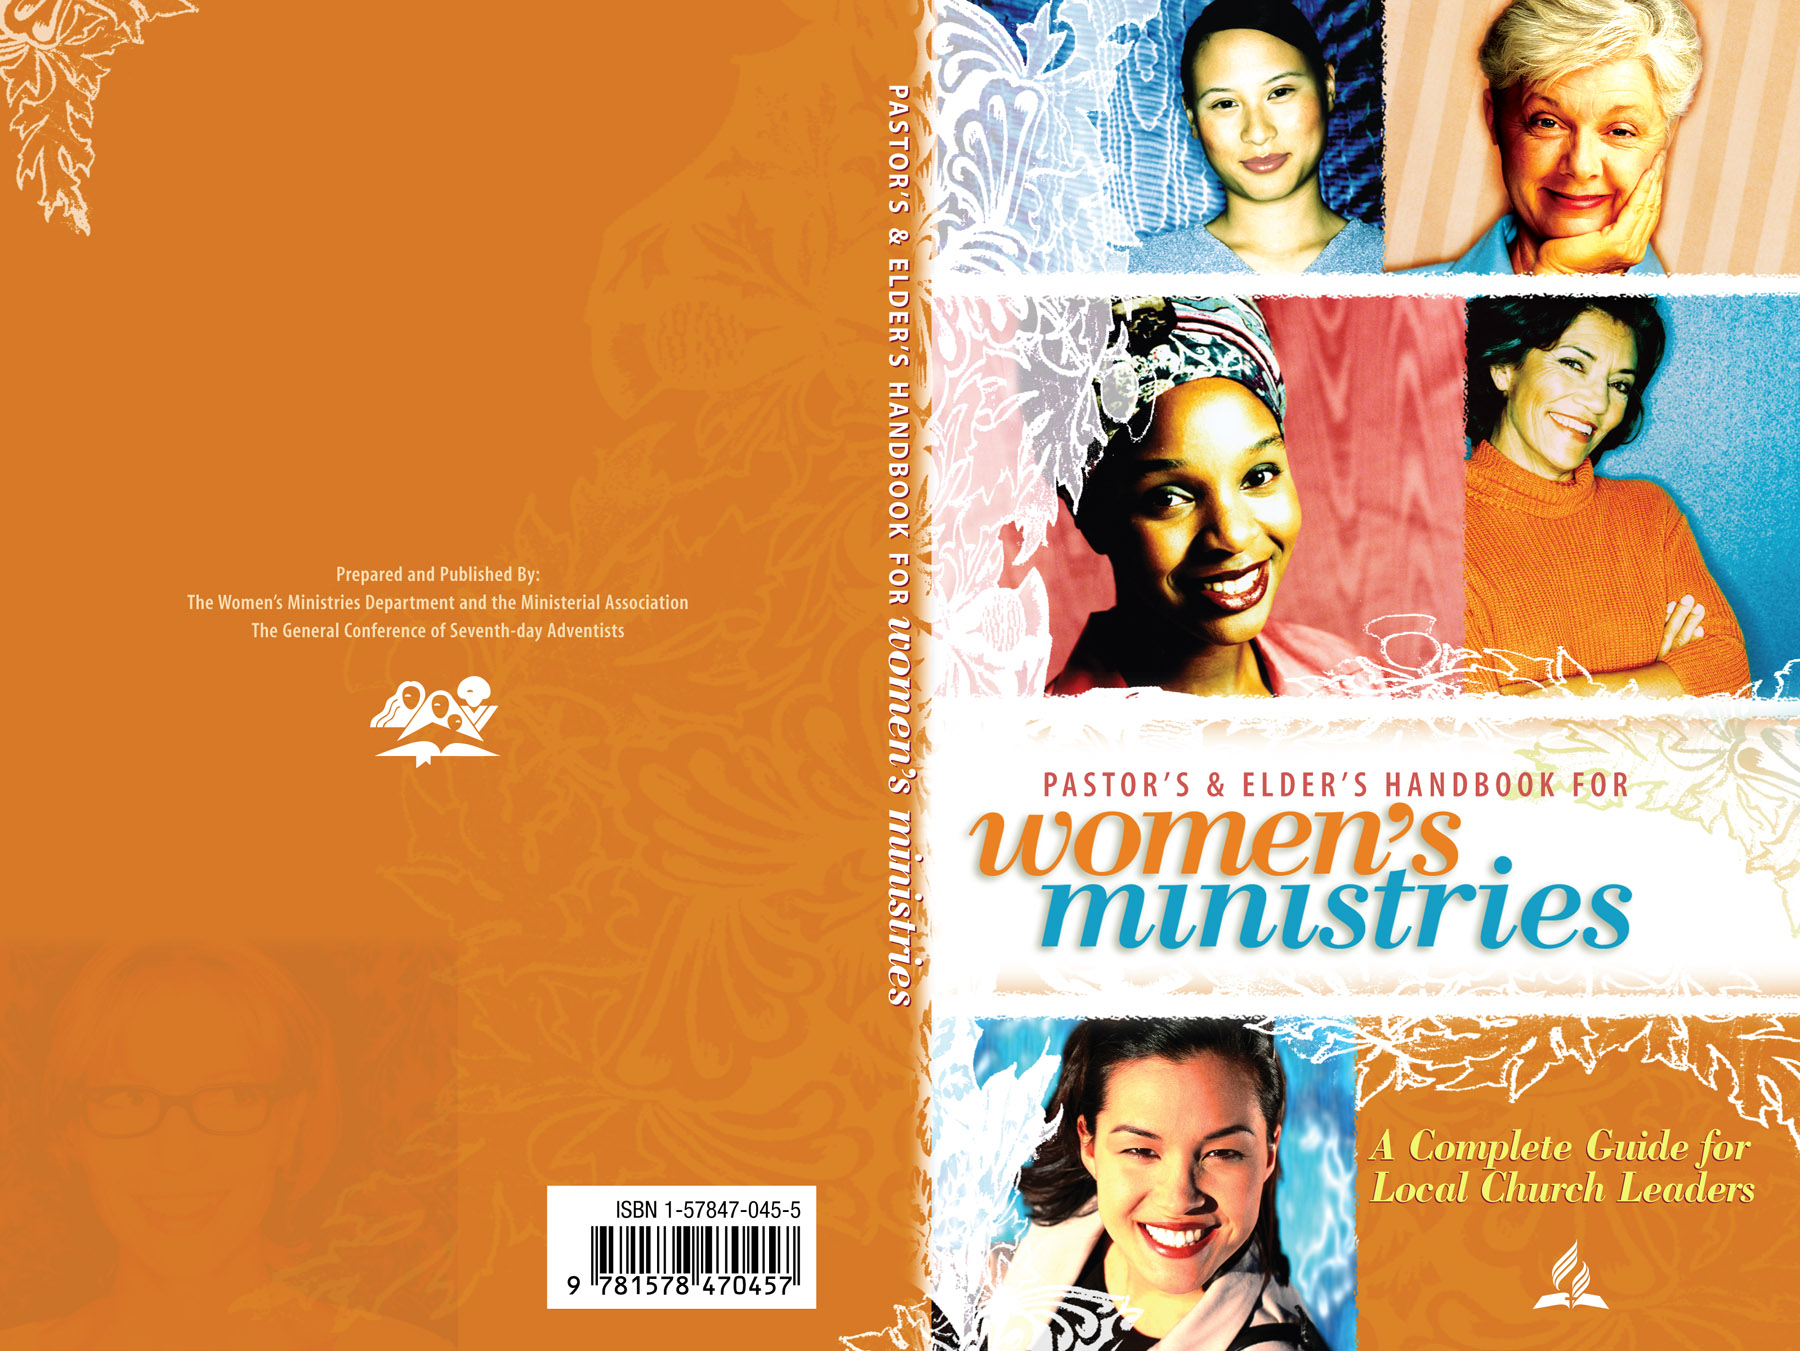 Adventist Women's Ministries | WM Handbook for Pastors and